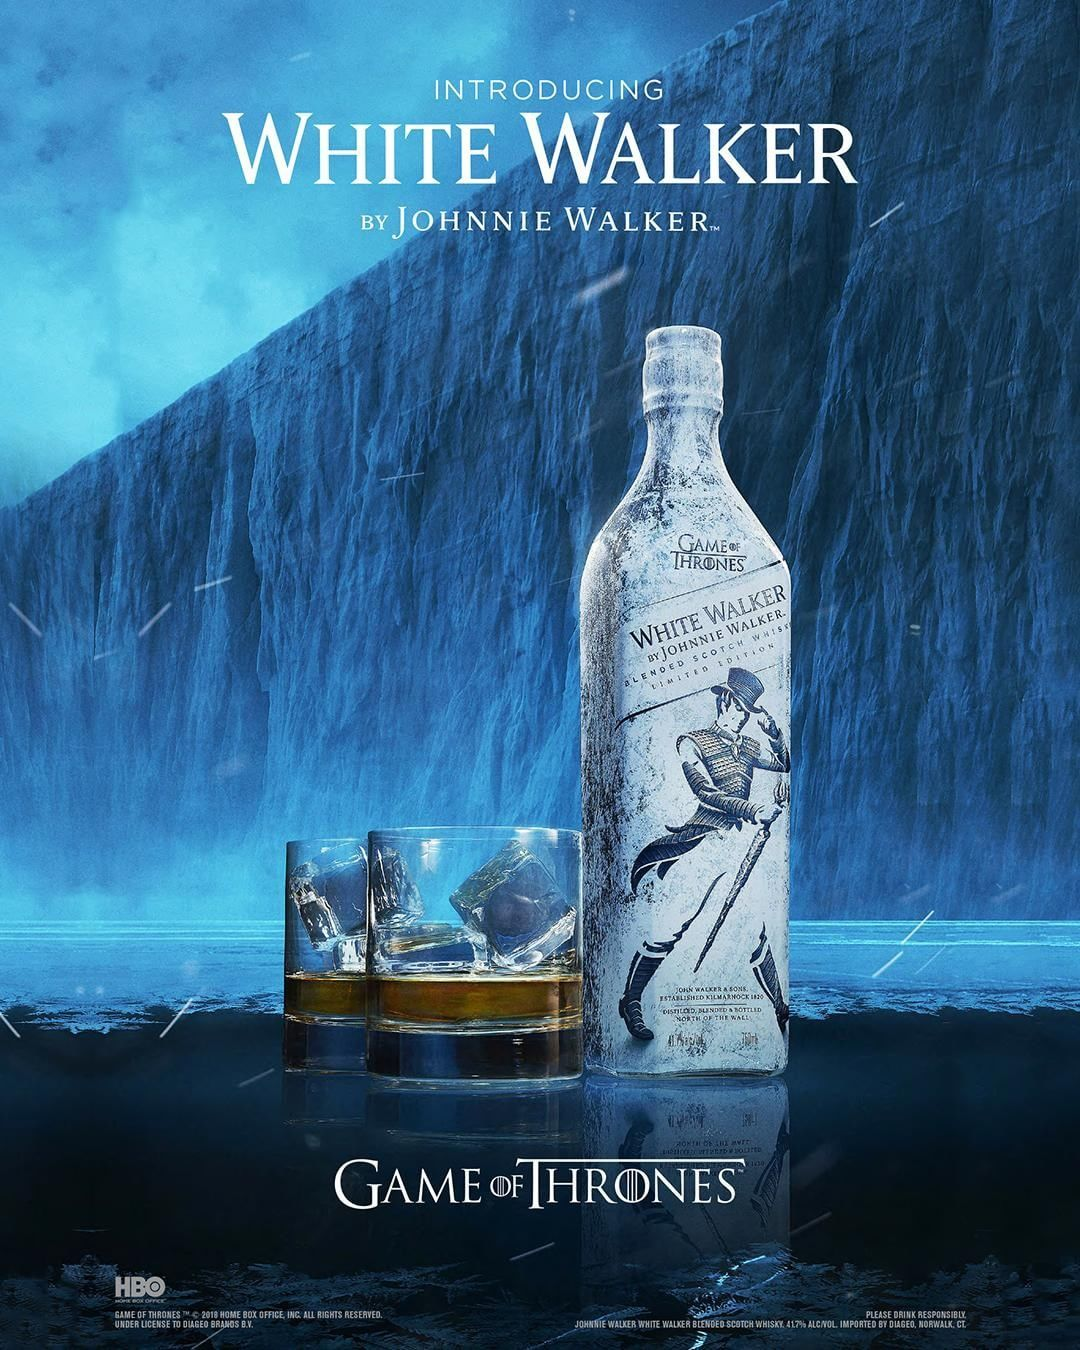 Feel The Chill With The Limited Edition Bottle Of White Walker By Johnnie Walker In Partnership With Gameofthrones This Chil Johnnie Walker Whisky Collection